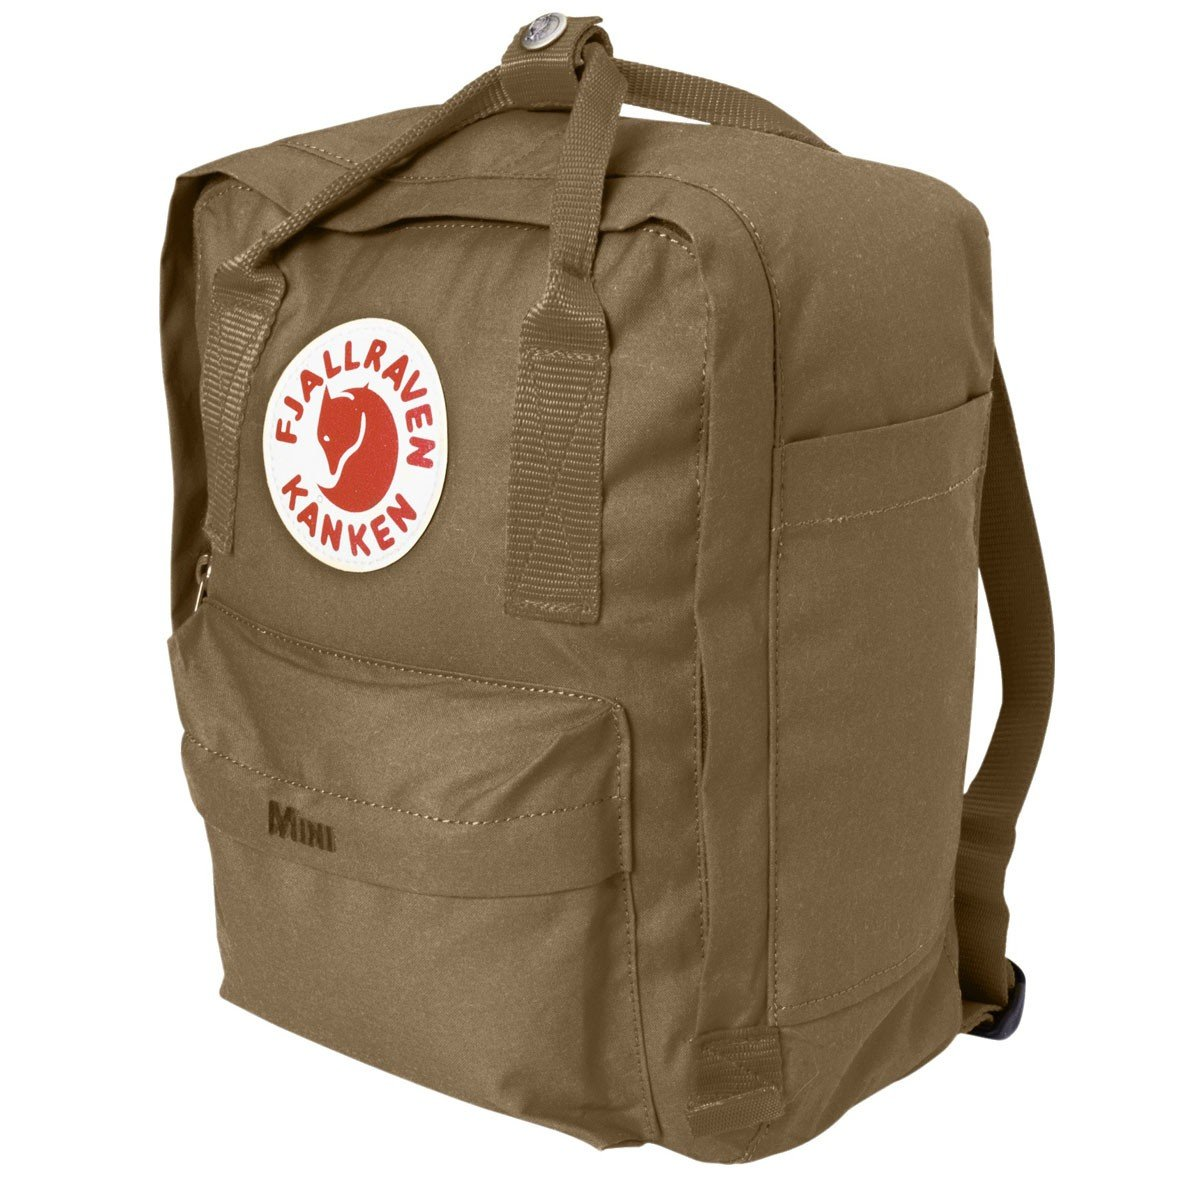 backpack-mini-kanken-sand-b